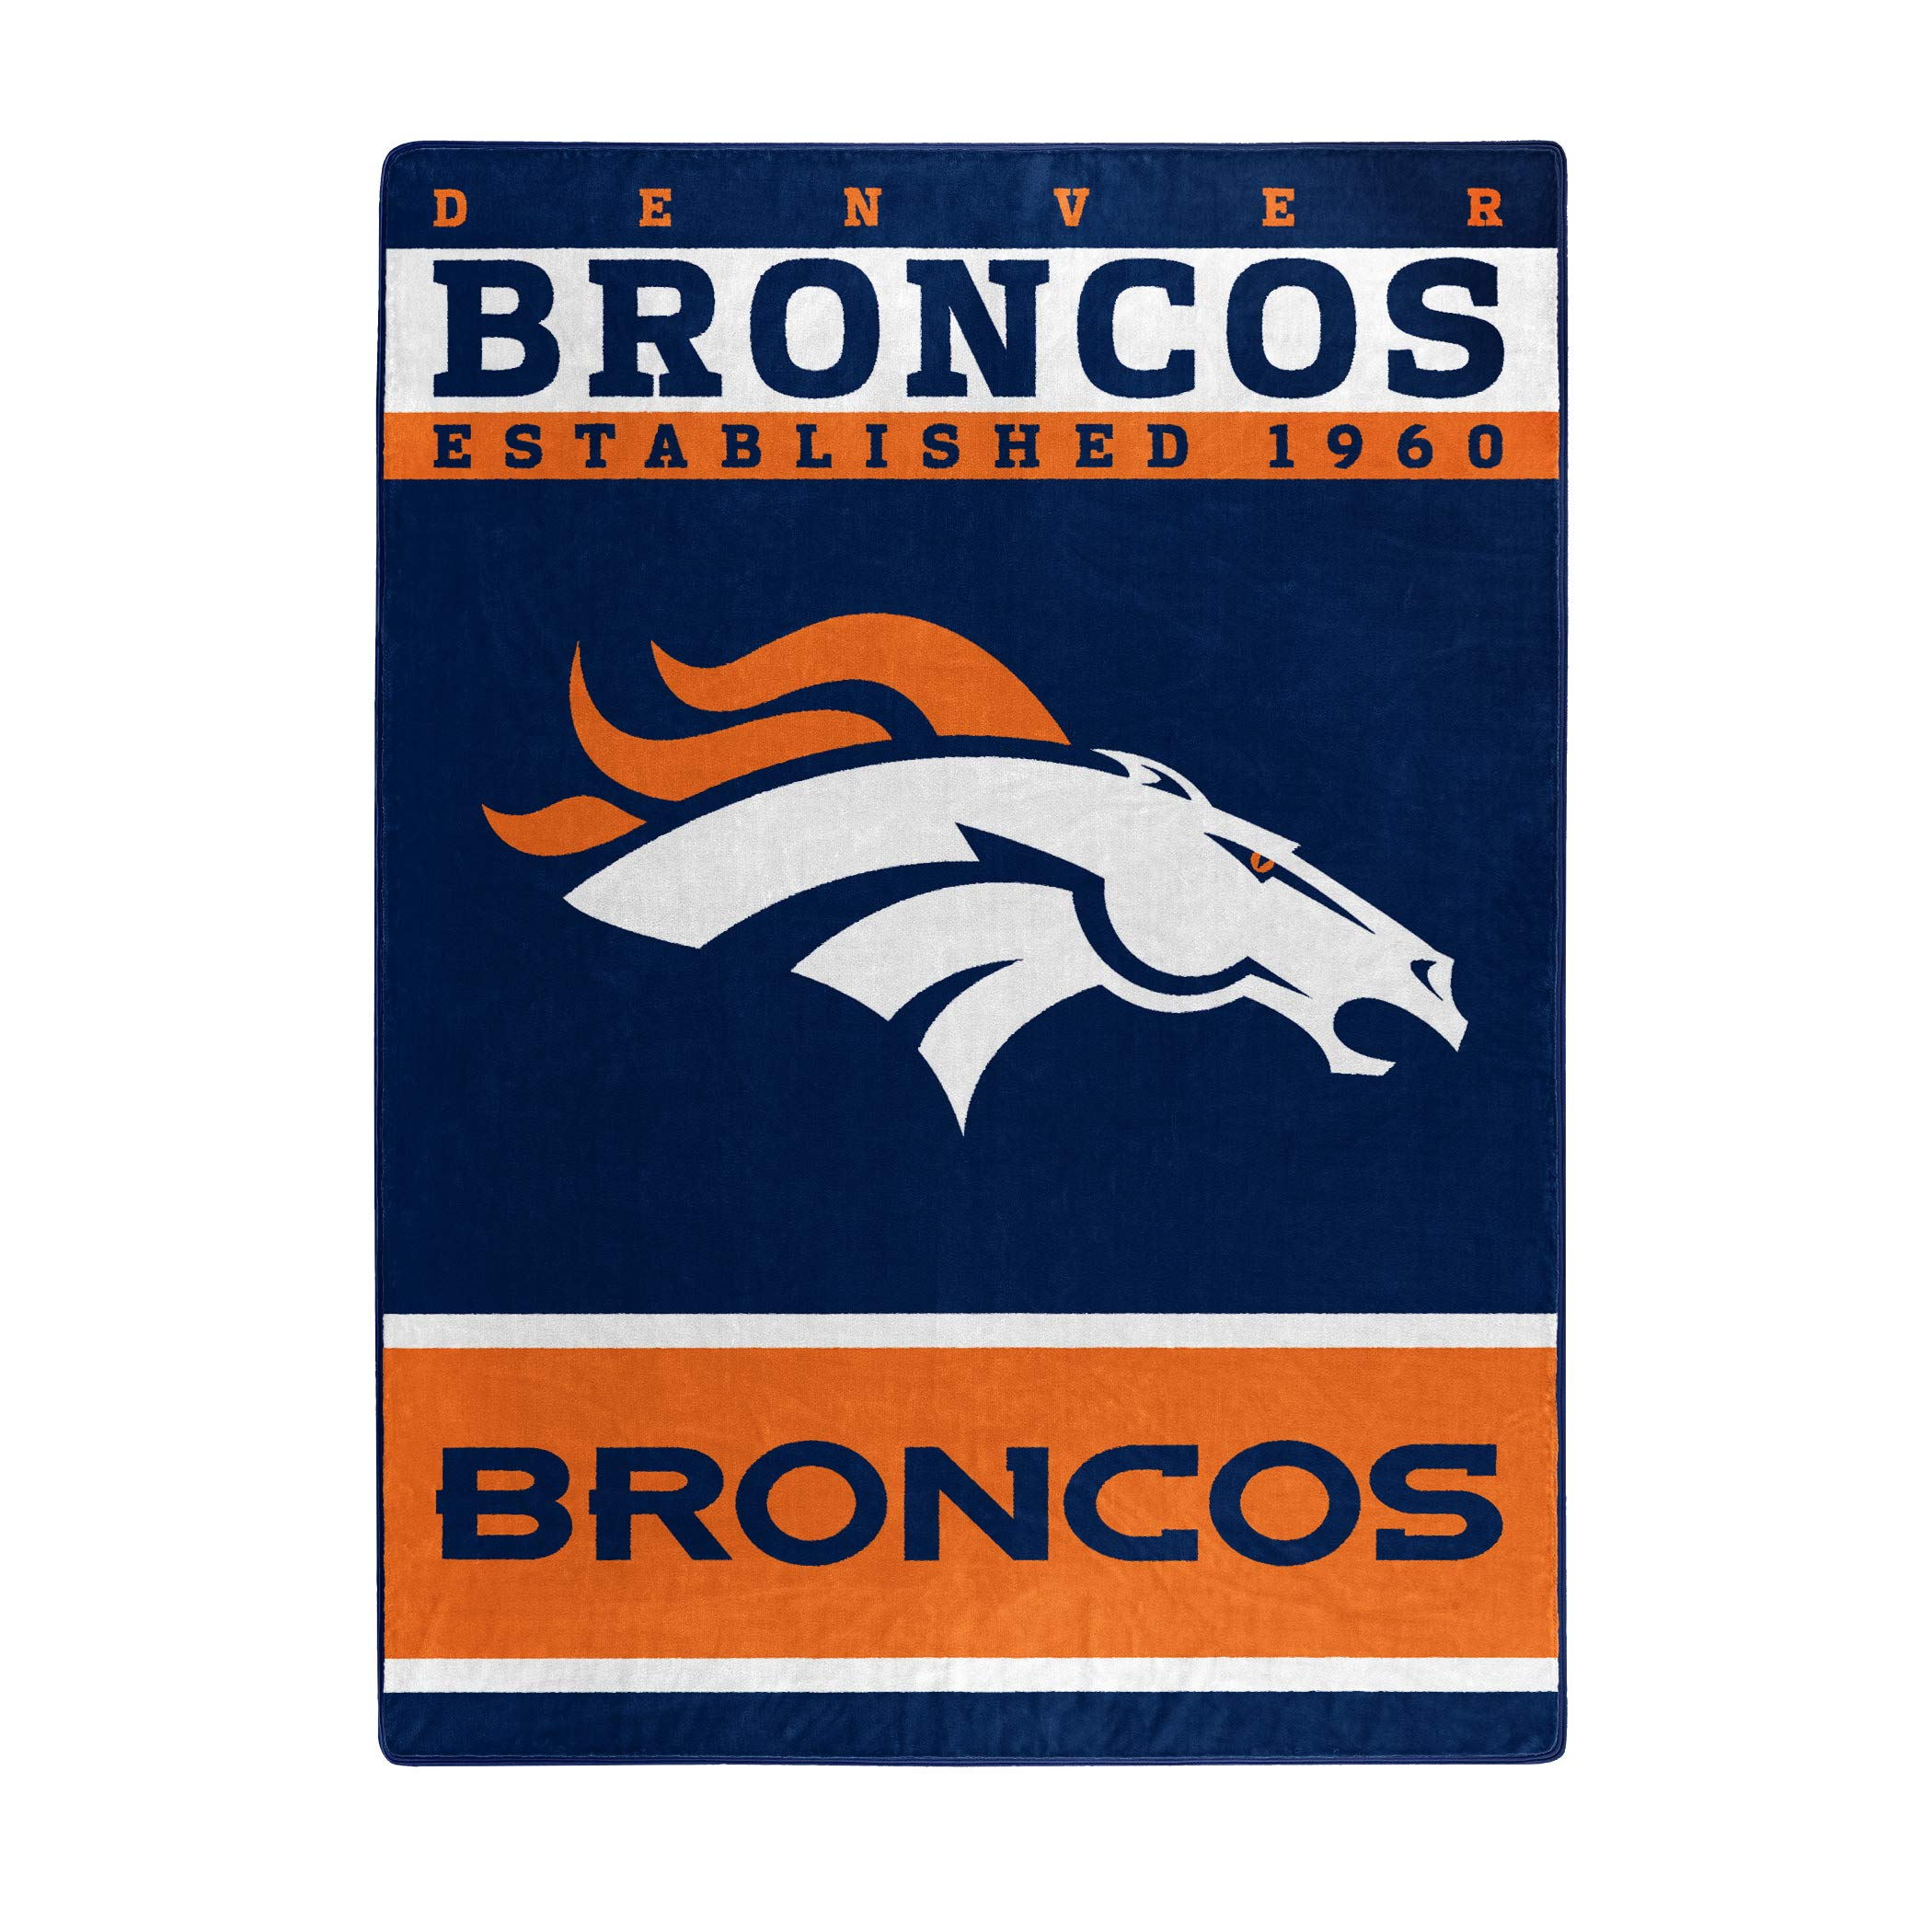 The Northwest Company Officially Licensed NFL Denver Broncos 12th Man Plush Raschel Throw Blanket, 60'' x 80'', Multi Color by The Northwest Company